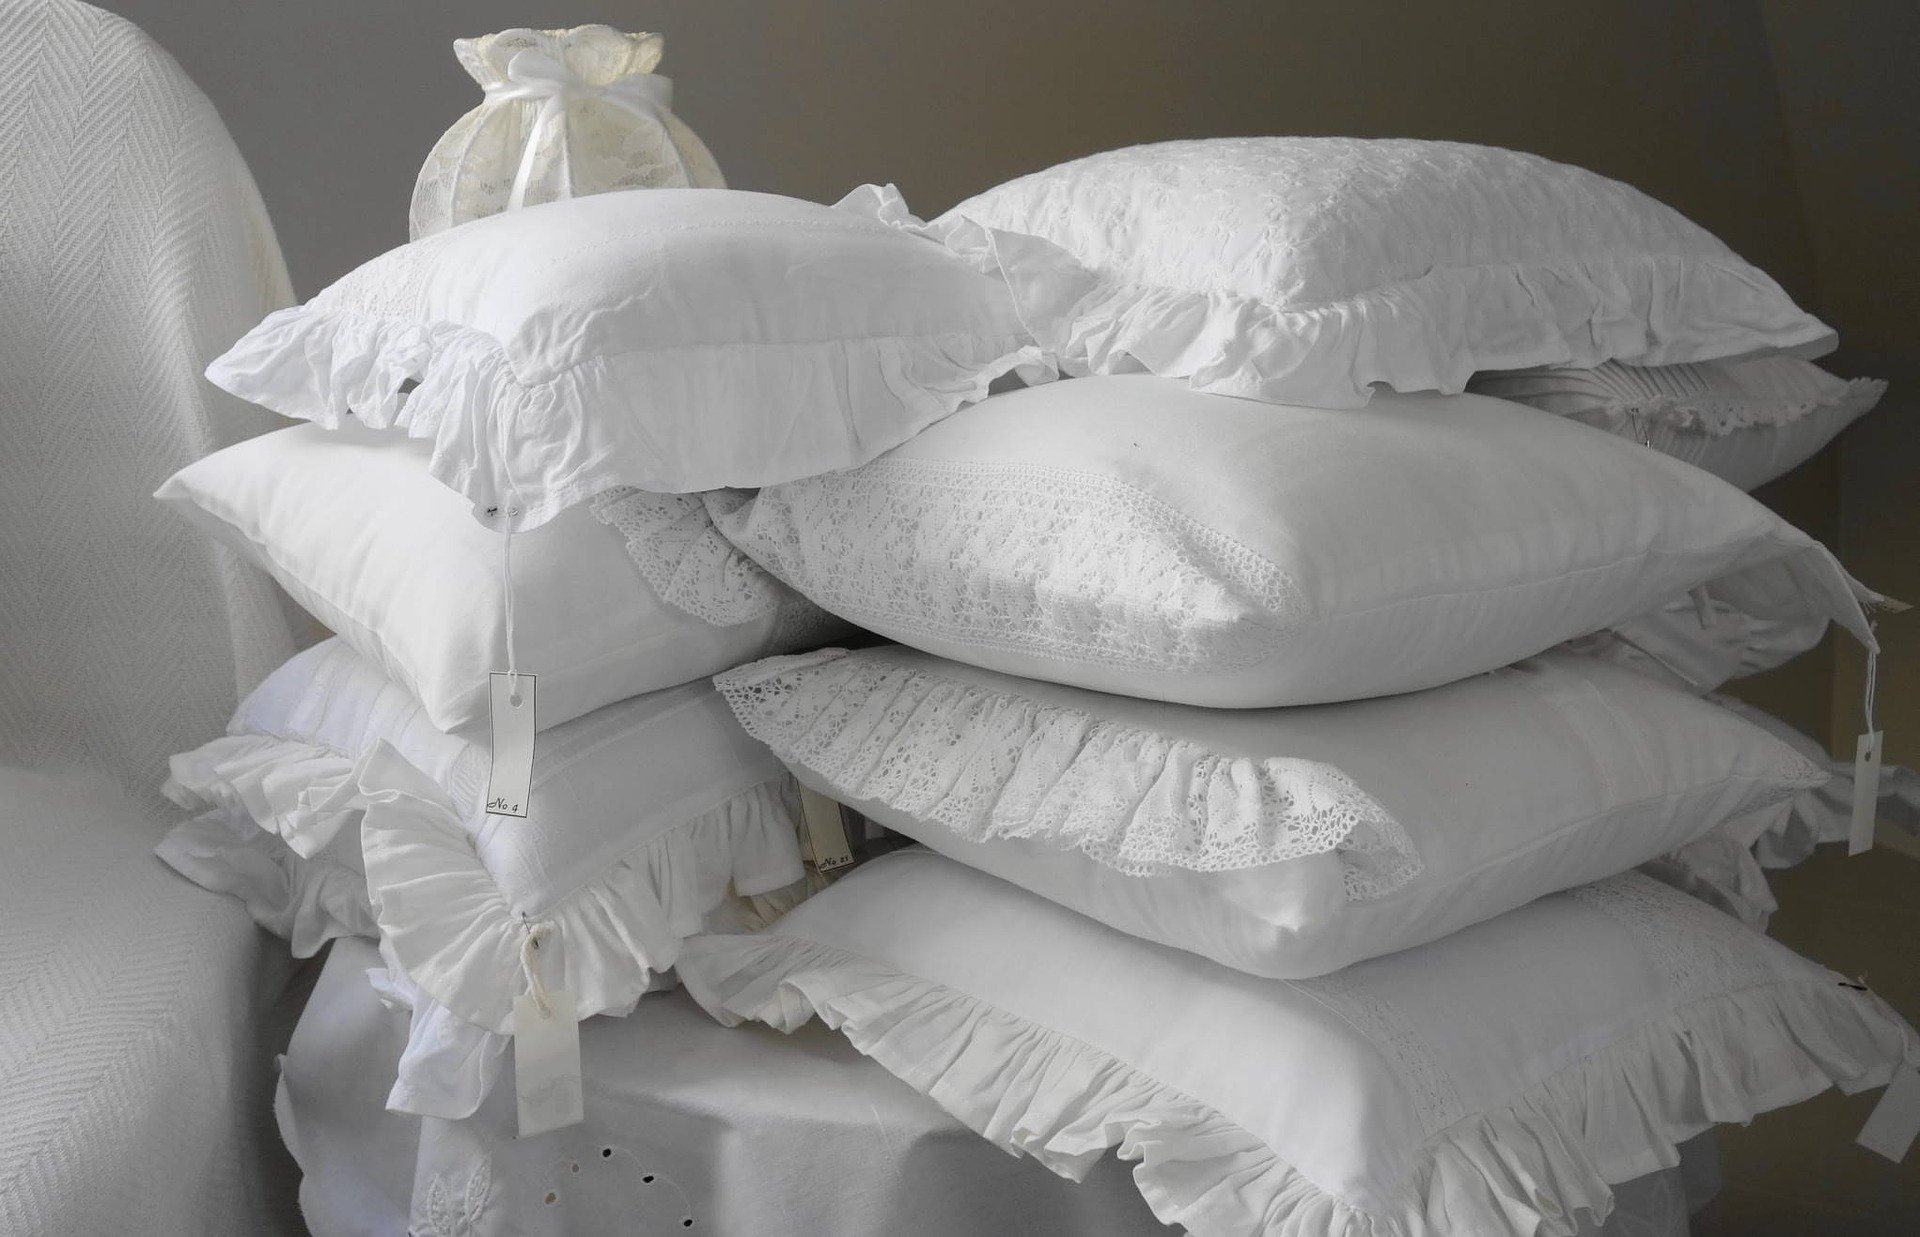 Make sure the pillow case you choose is made from a breathable fabric.